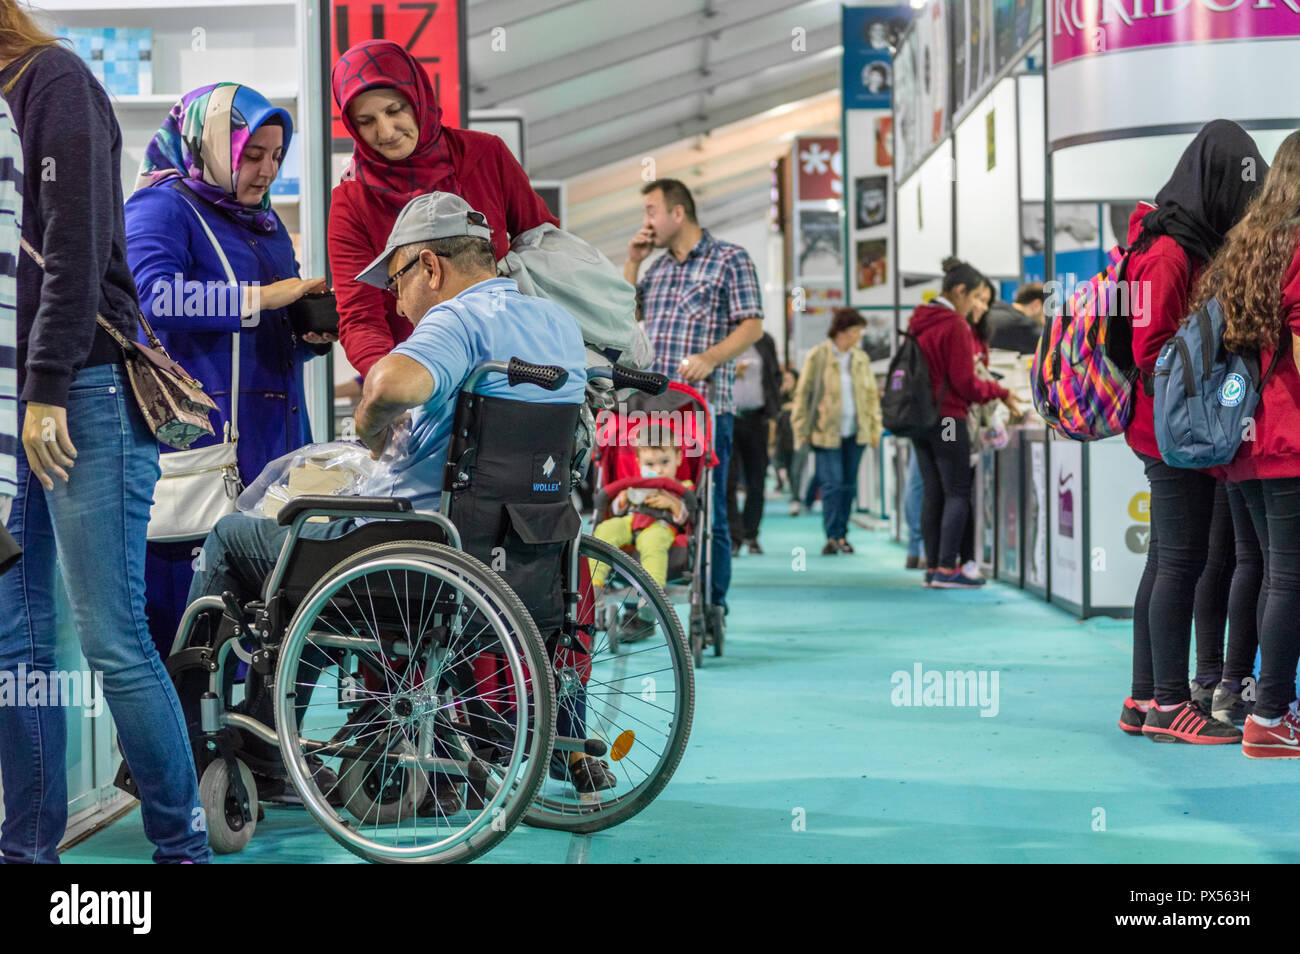 Eskisehir, Turkey - October 09, 2018: Man in wheelchair visiting Eskisehir Book Fair with his family - Stock Image